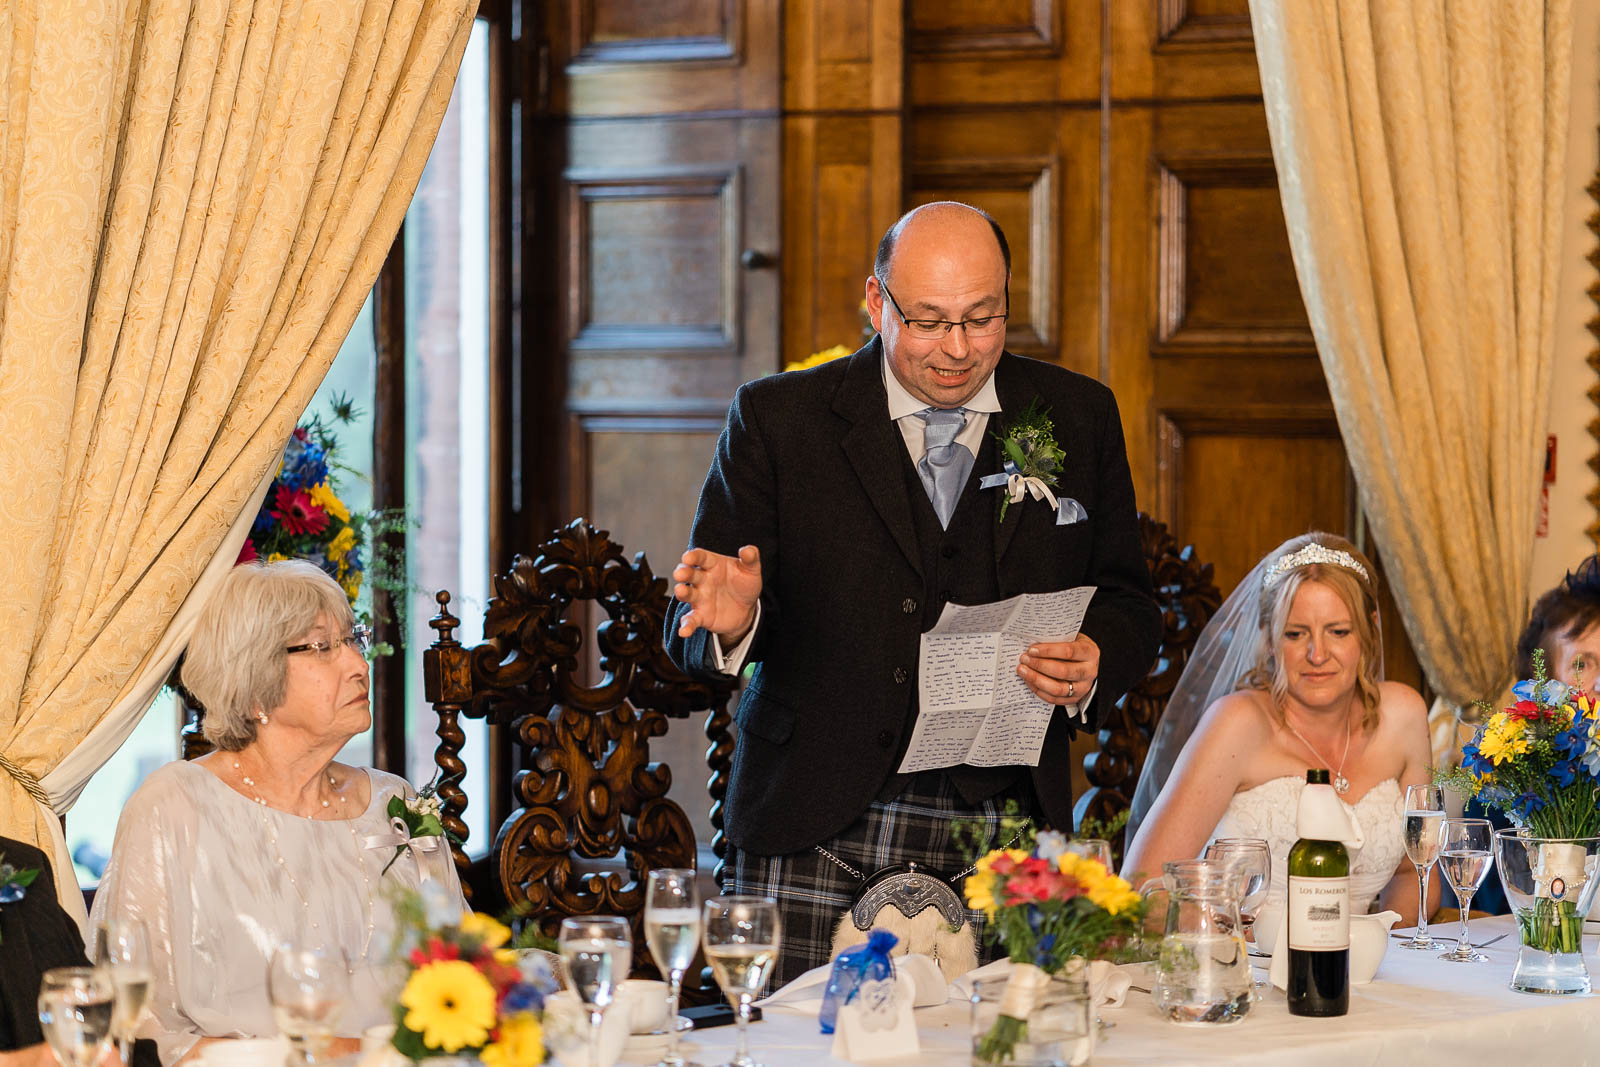 dalhousie_castle_wedding_edinburgh_dearlyphotography (290 of 371).jpg